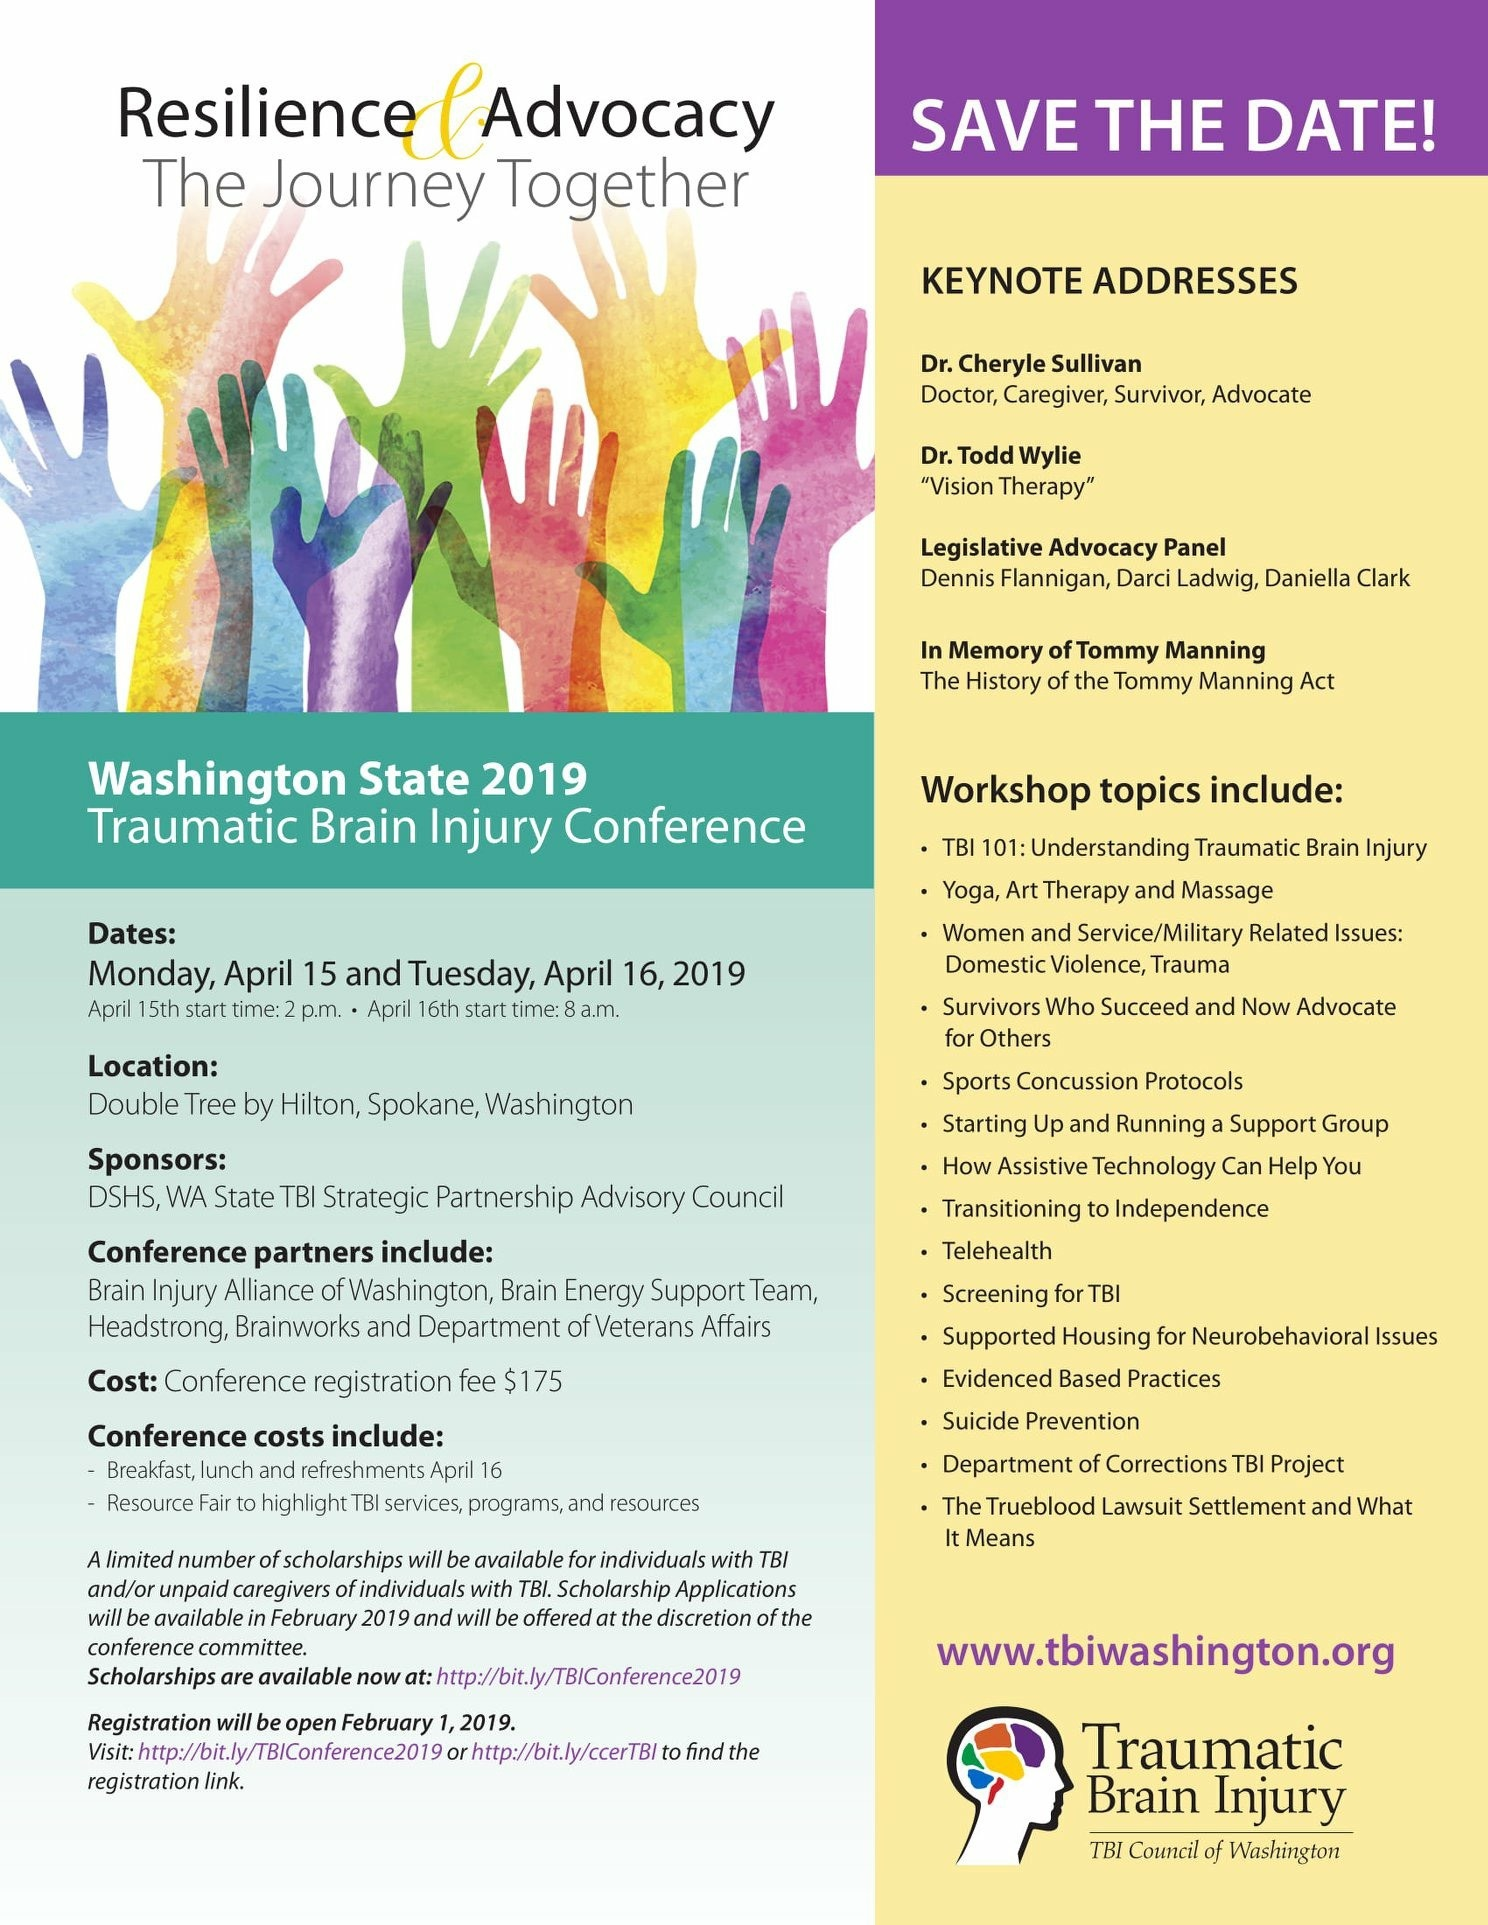 WA State TBI Conference: Scholarship Applications Due March 8, 2019